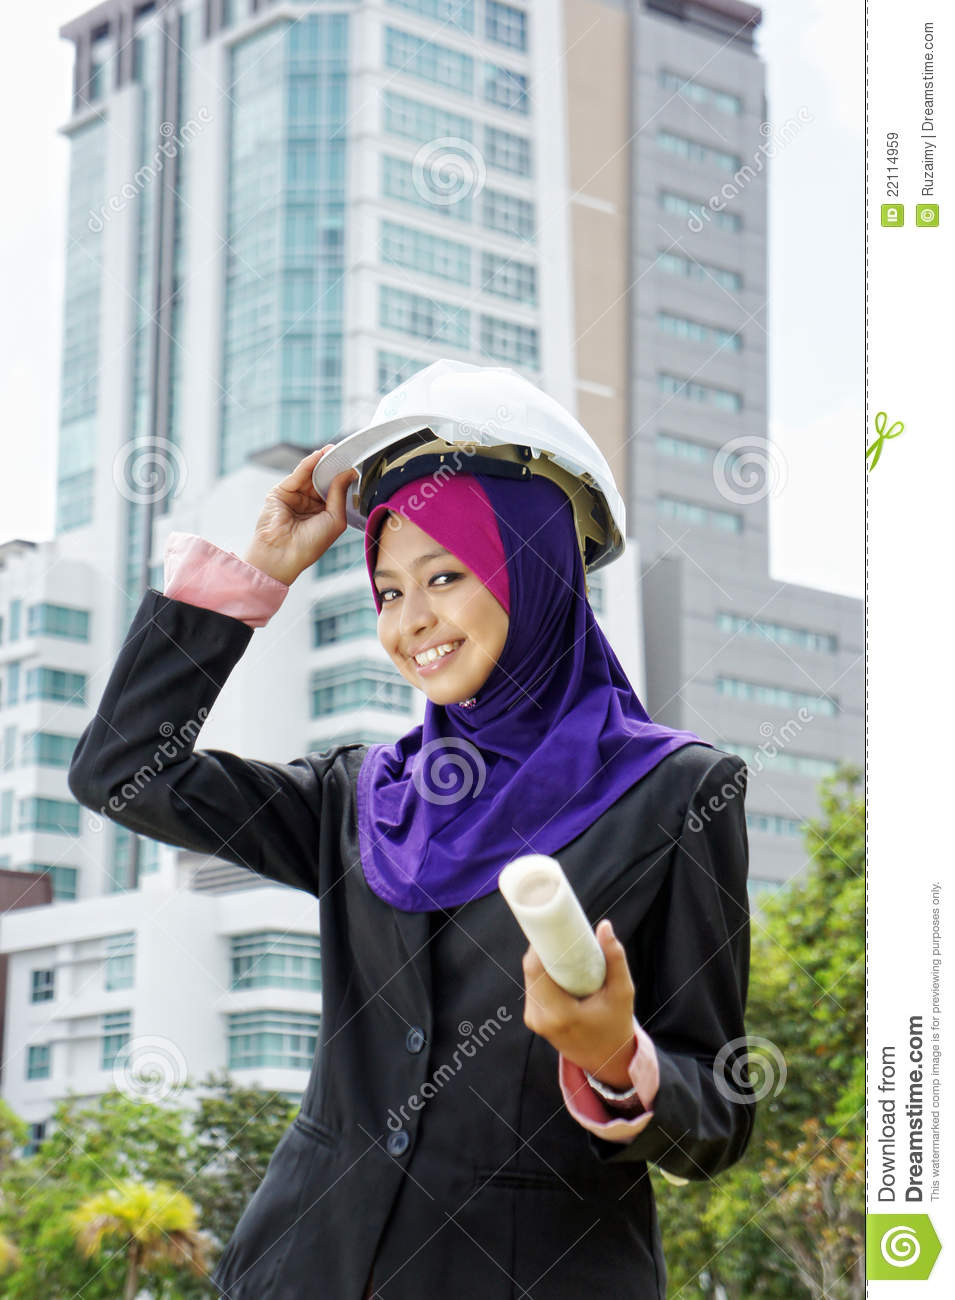 lesage single muslim girls Meet caucasian white muslims on lovehabibi meet white muslims discover men and women of all ages from the white muslim community looking to connect.